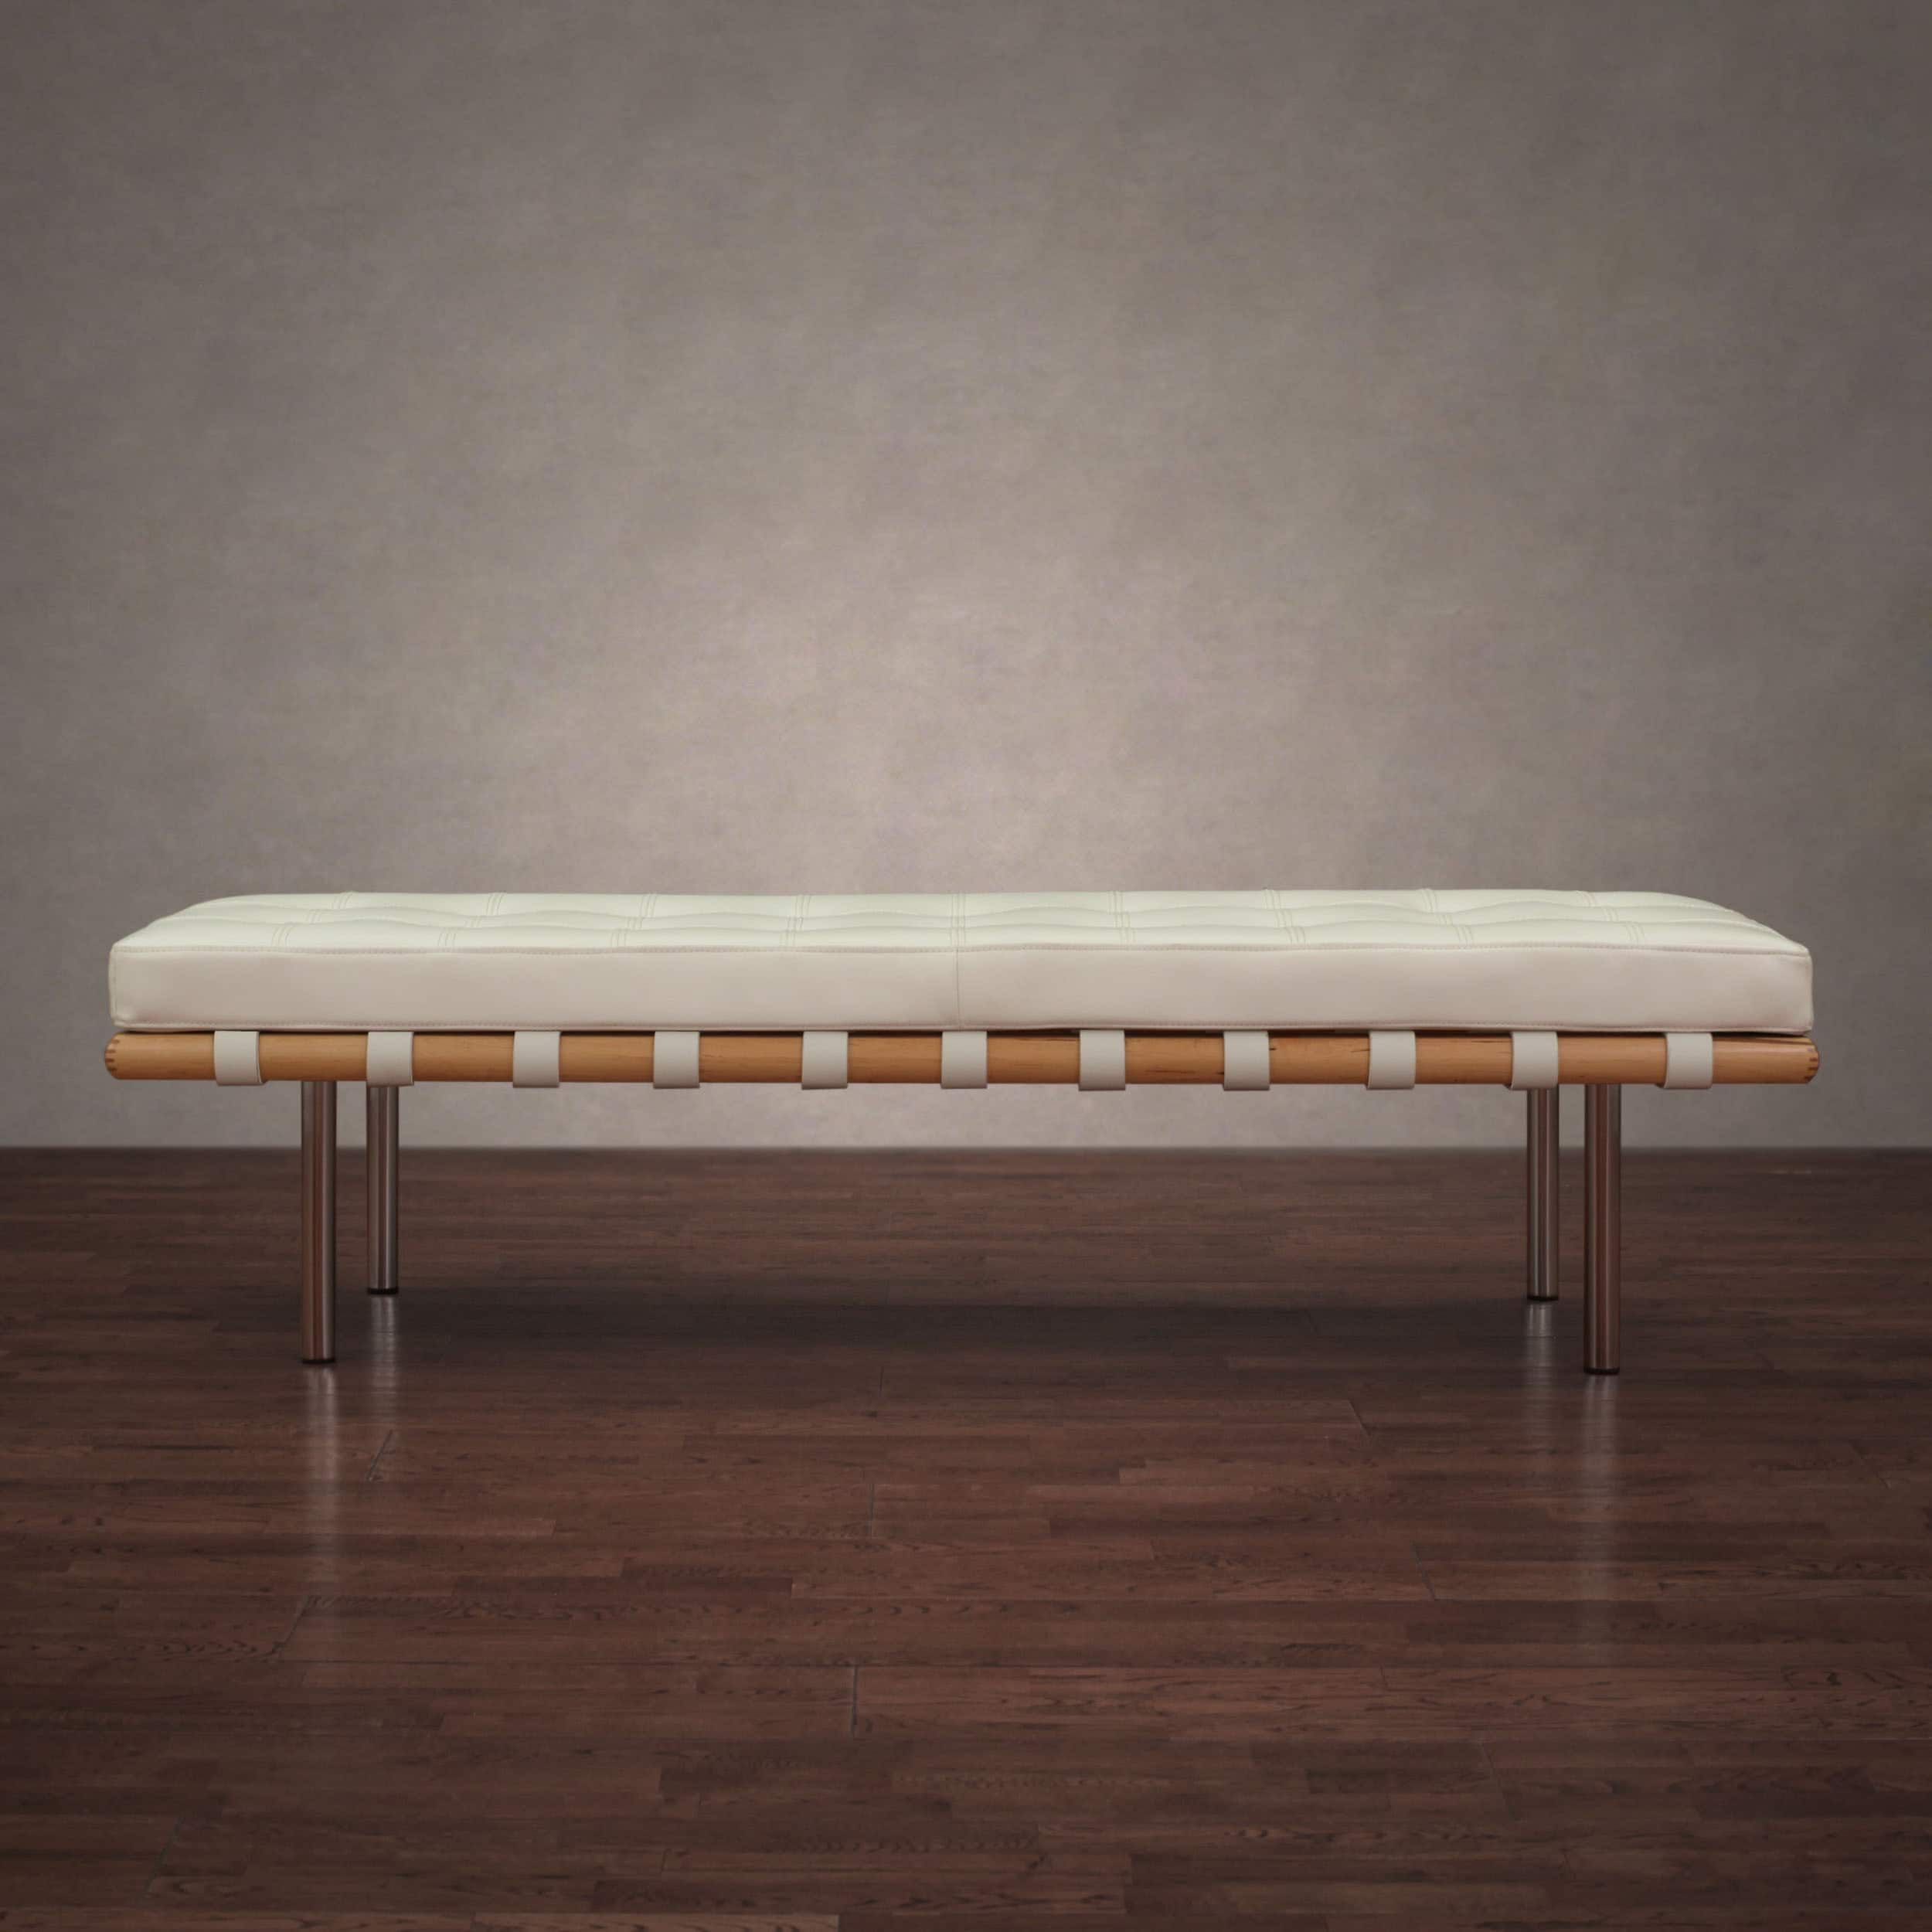 Andalucia Modern White Leather Bench Large 60 Inch Leather Bench Furniture Deals Furniture